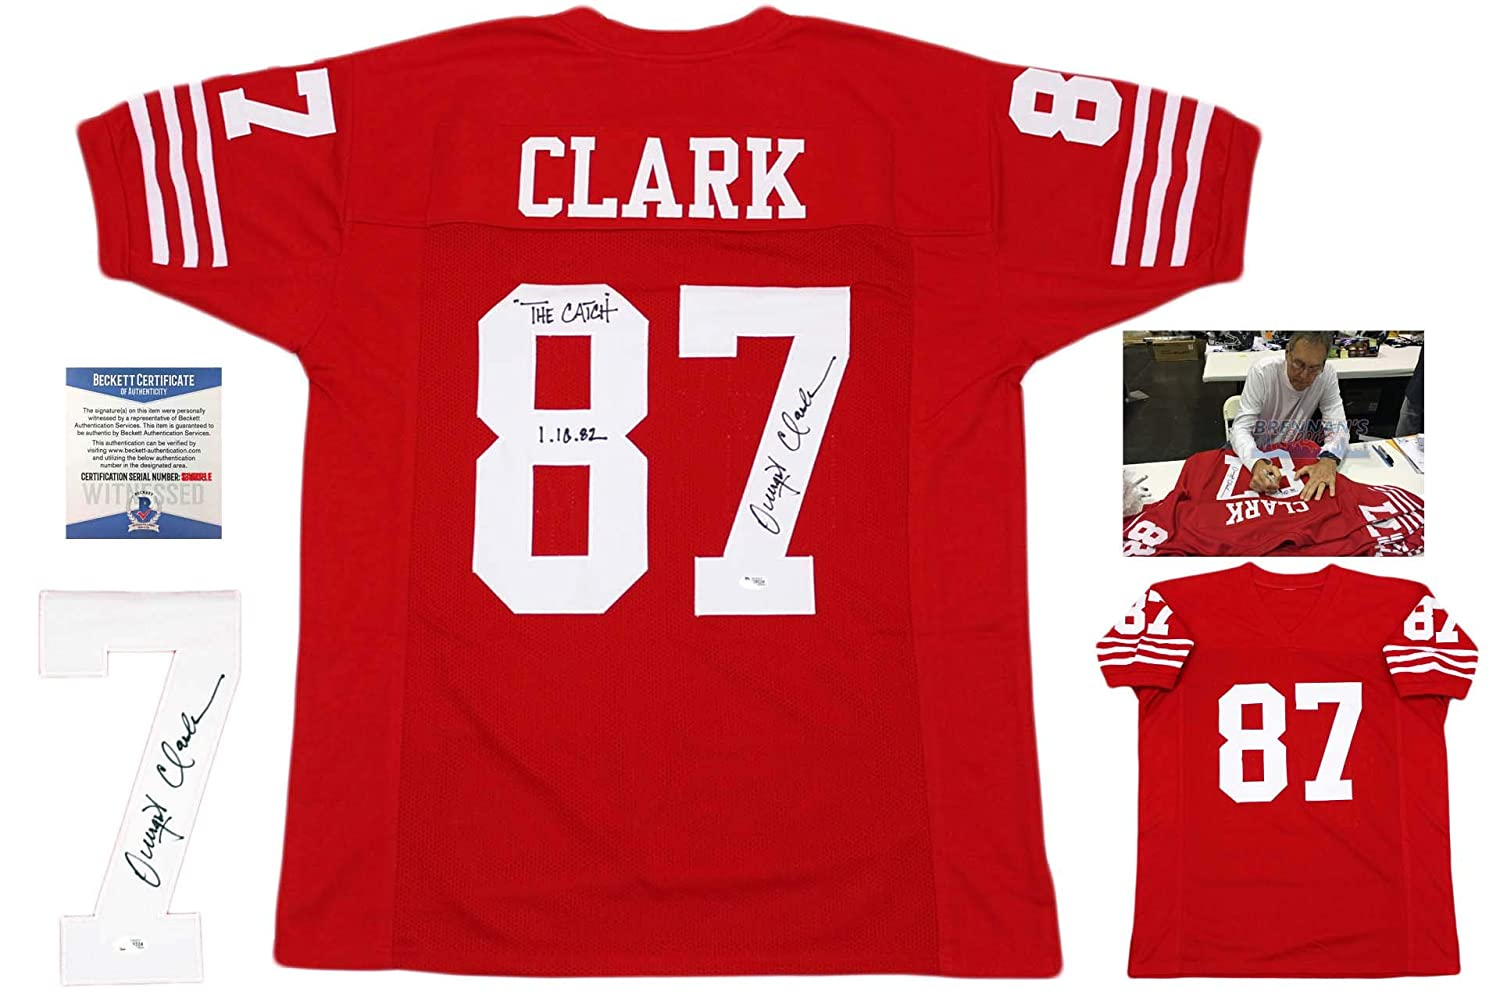 Dwight Clark Autographed Signed Jersey - The Catch - Beckett Authentic at  Amazon's Sports Collectibles Store